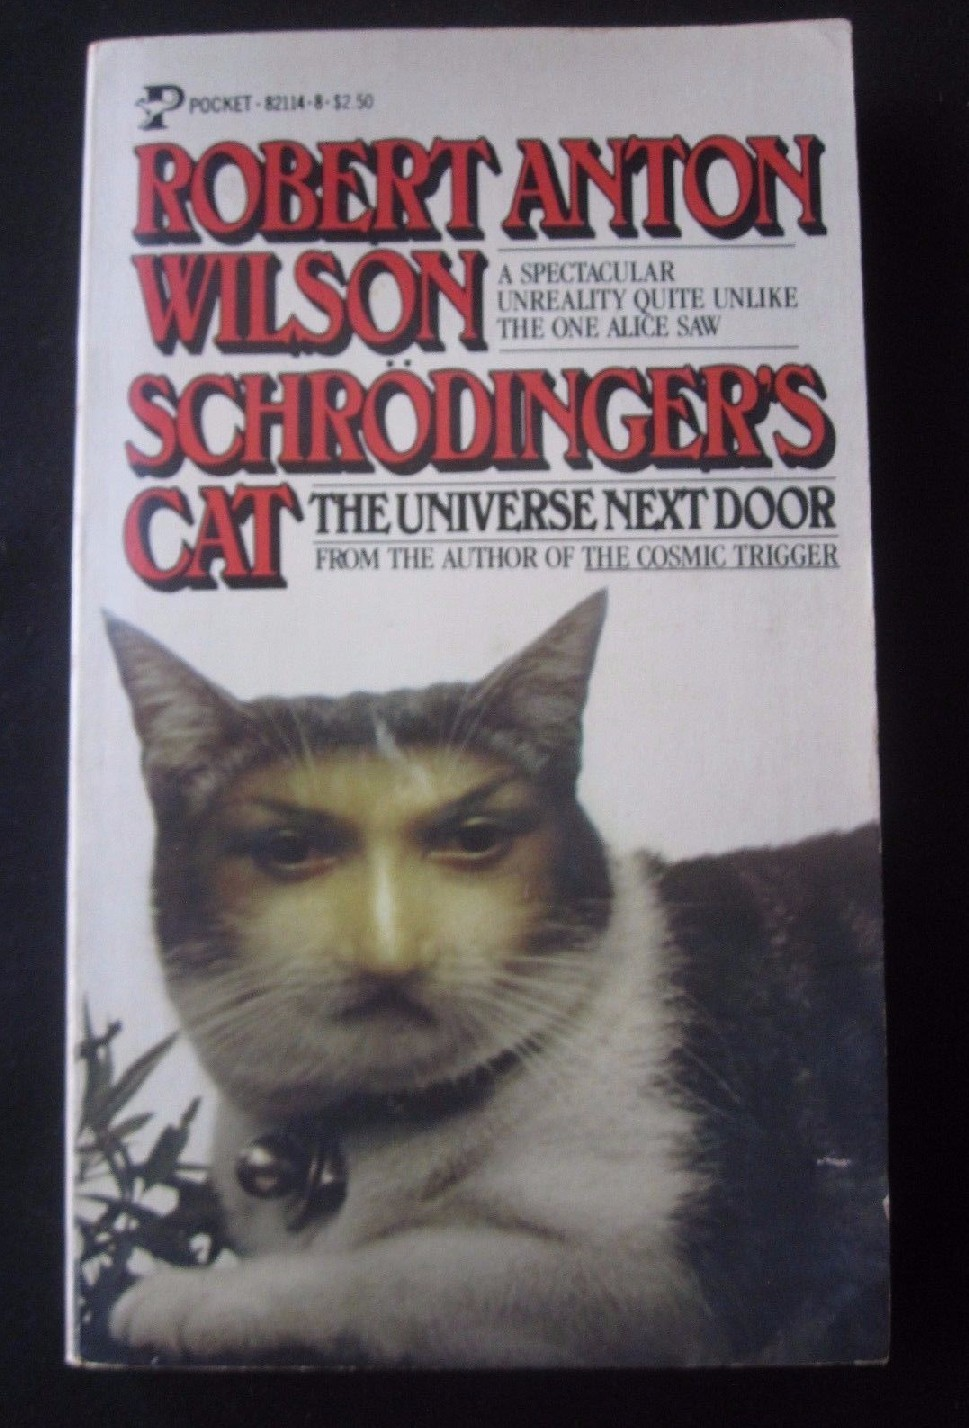 Heisenberg is uncertain about this cover